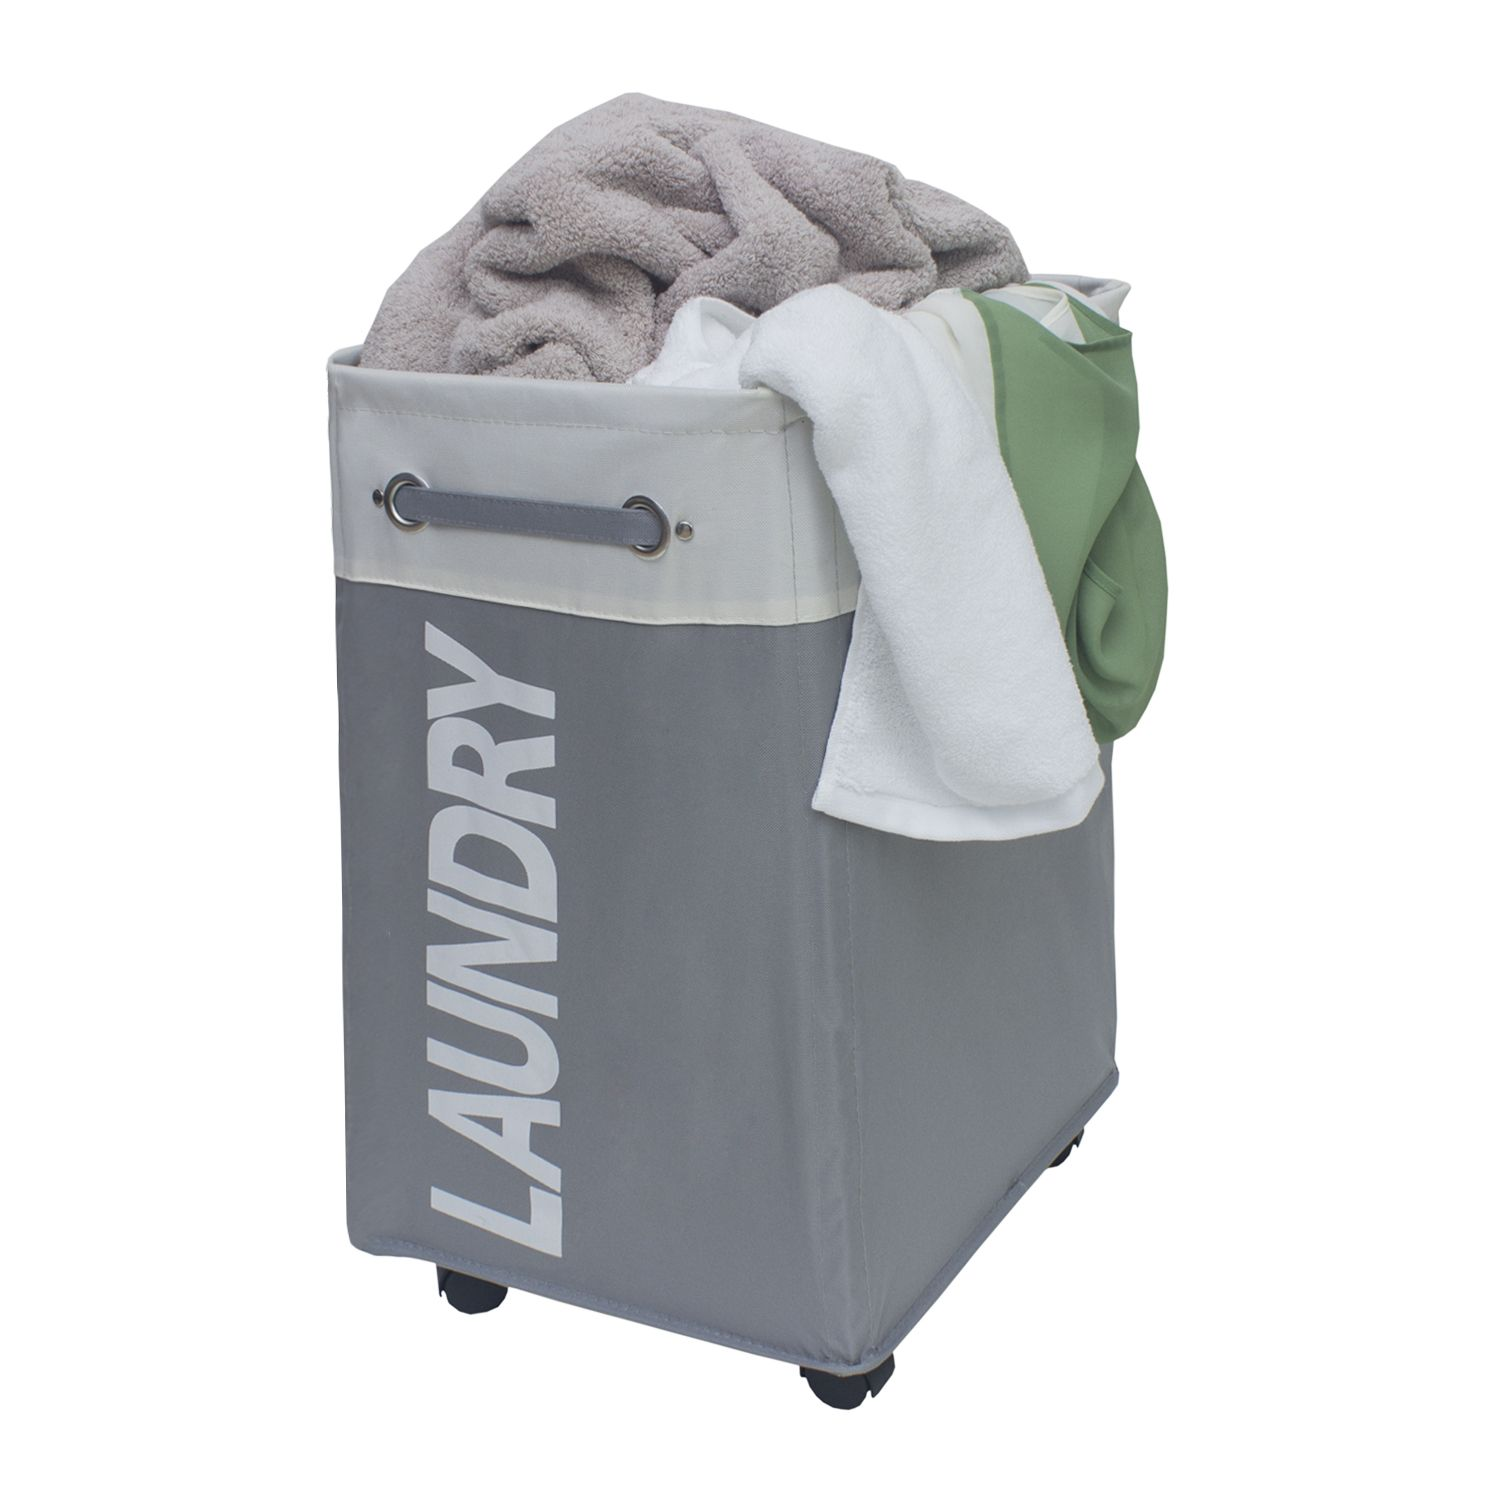 Large Rolling Laundry Hamper